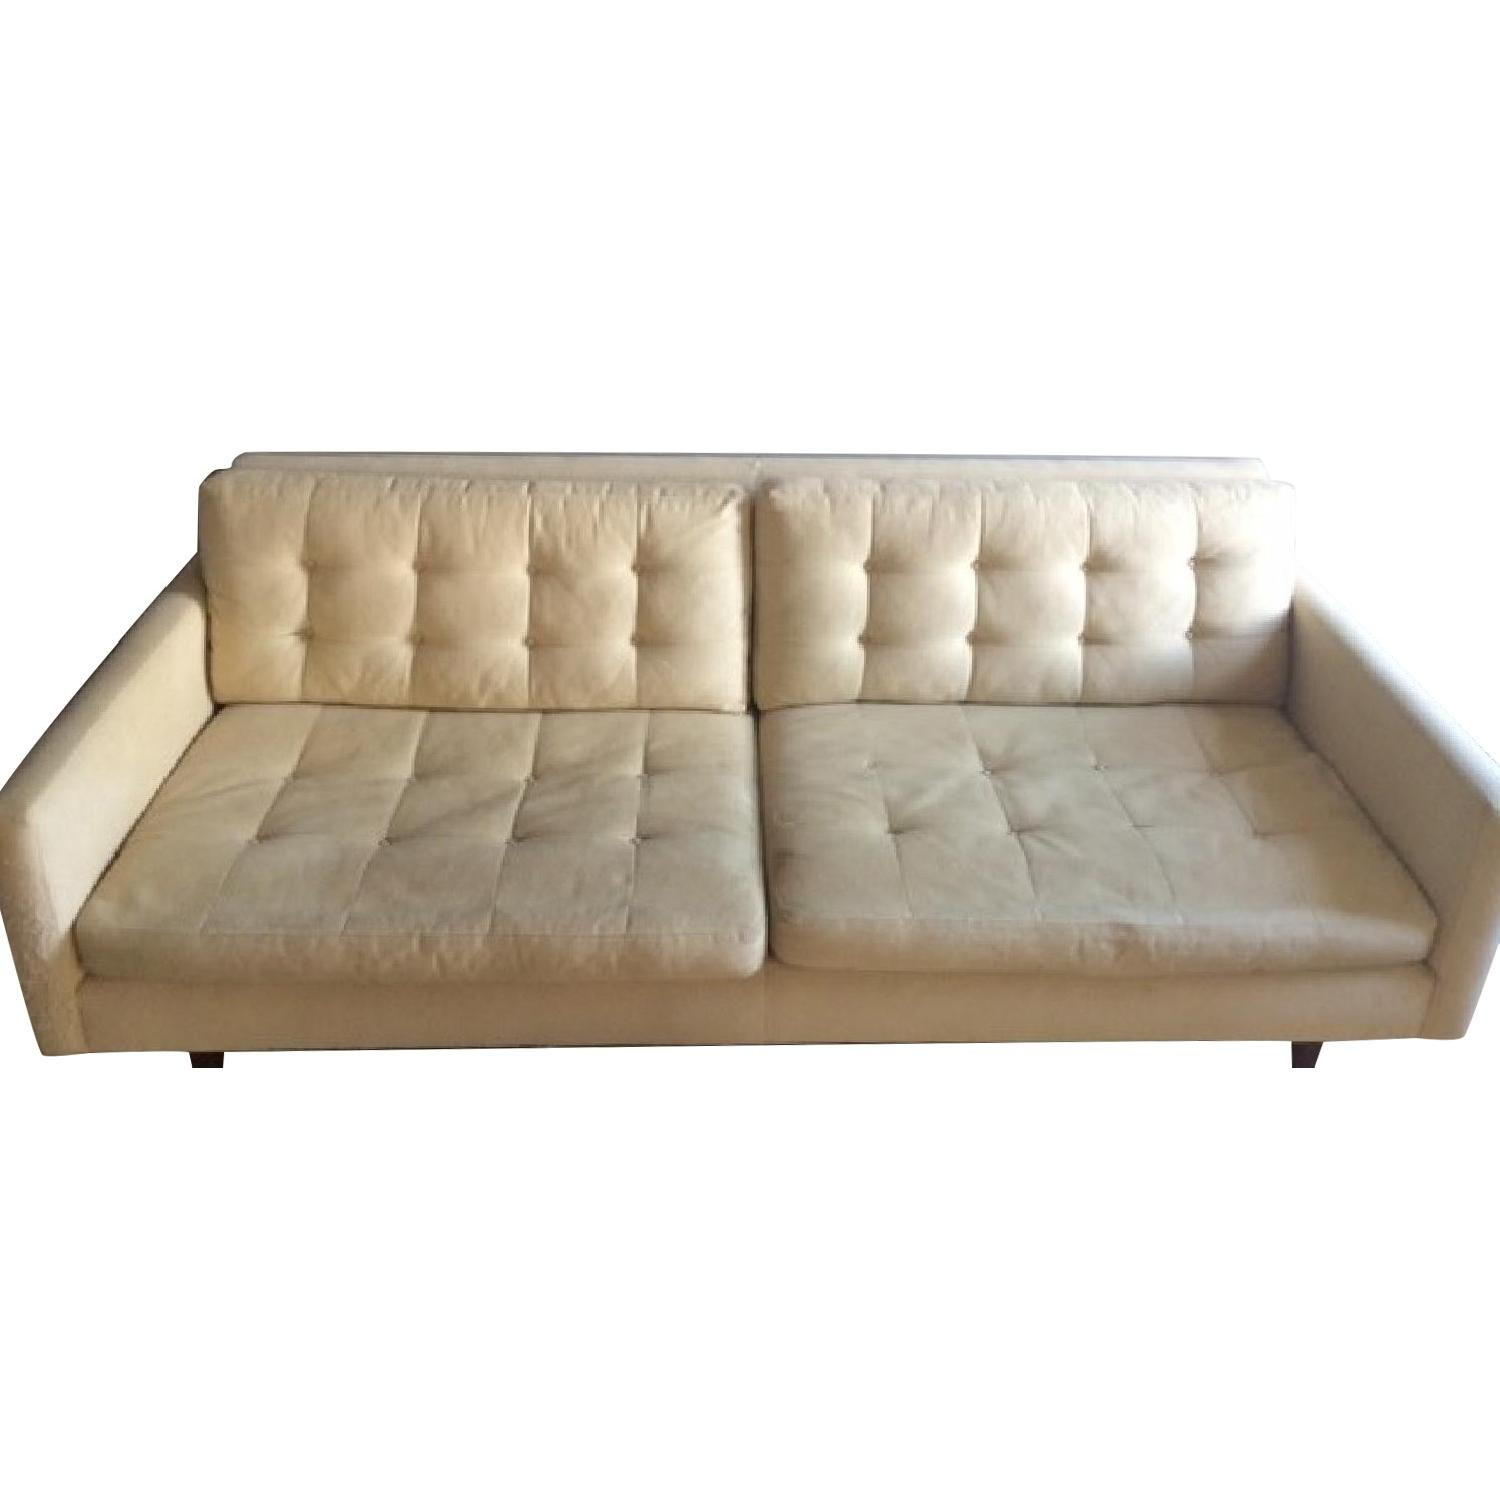 Crate & Barrel Petrie Sofa - image-0